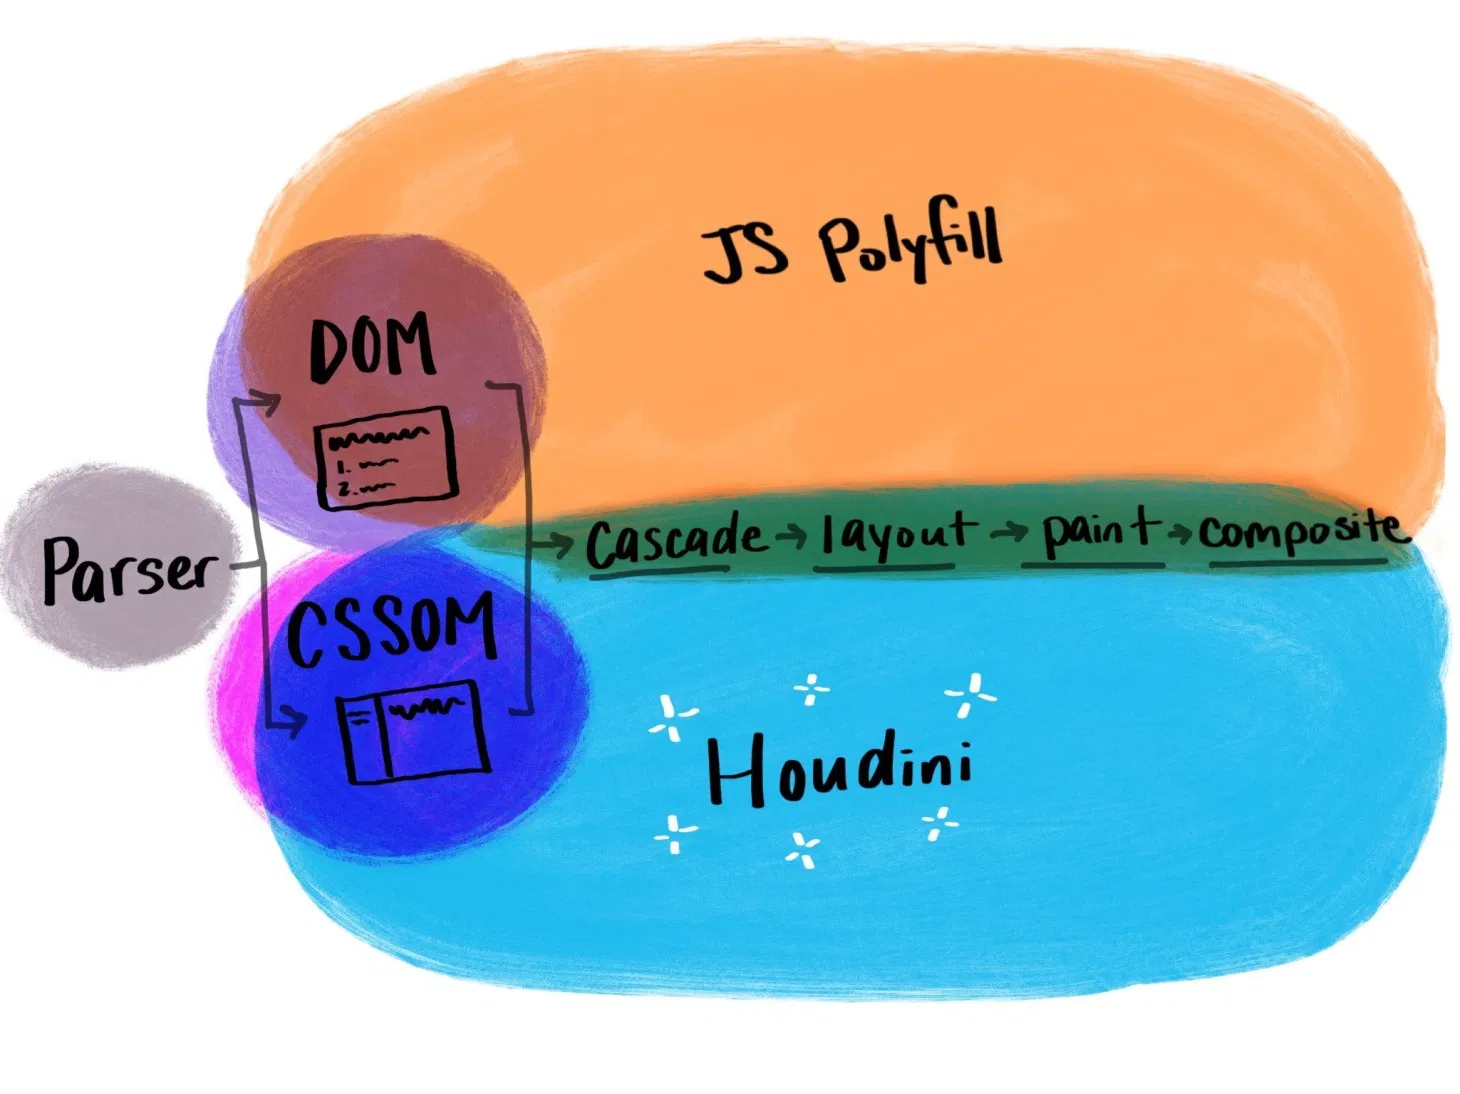 Illustration showing how Houdini works compared to traditional JavaScript polyfills.